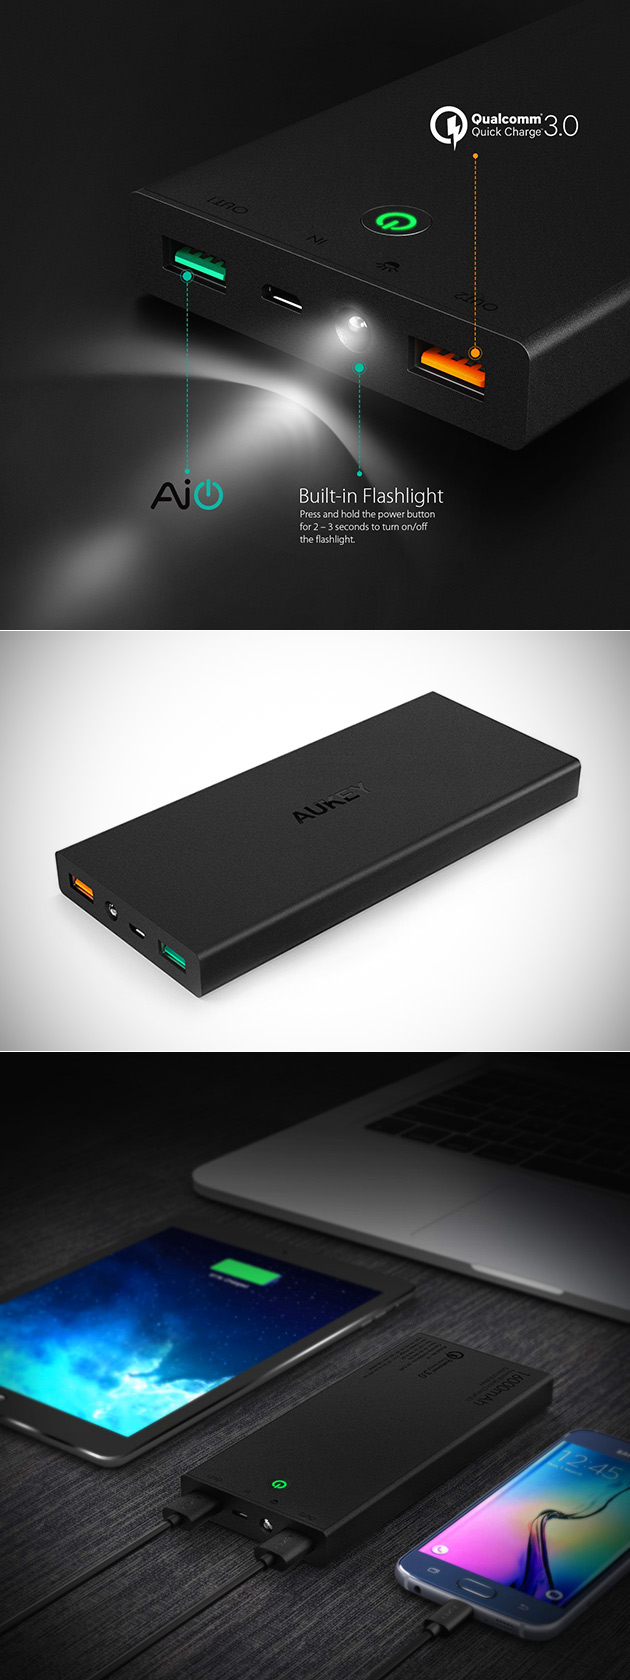 Aukey 16,000mAh Power Bank